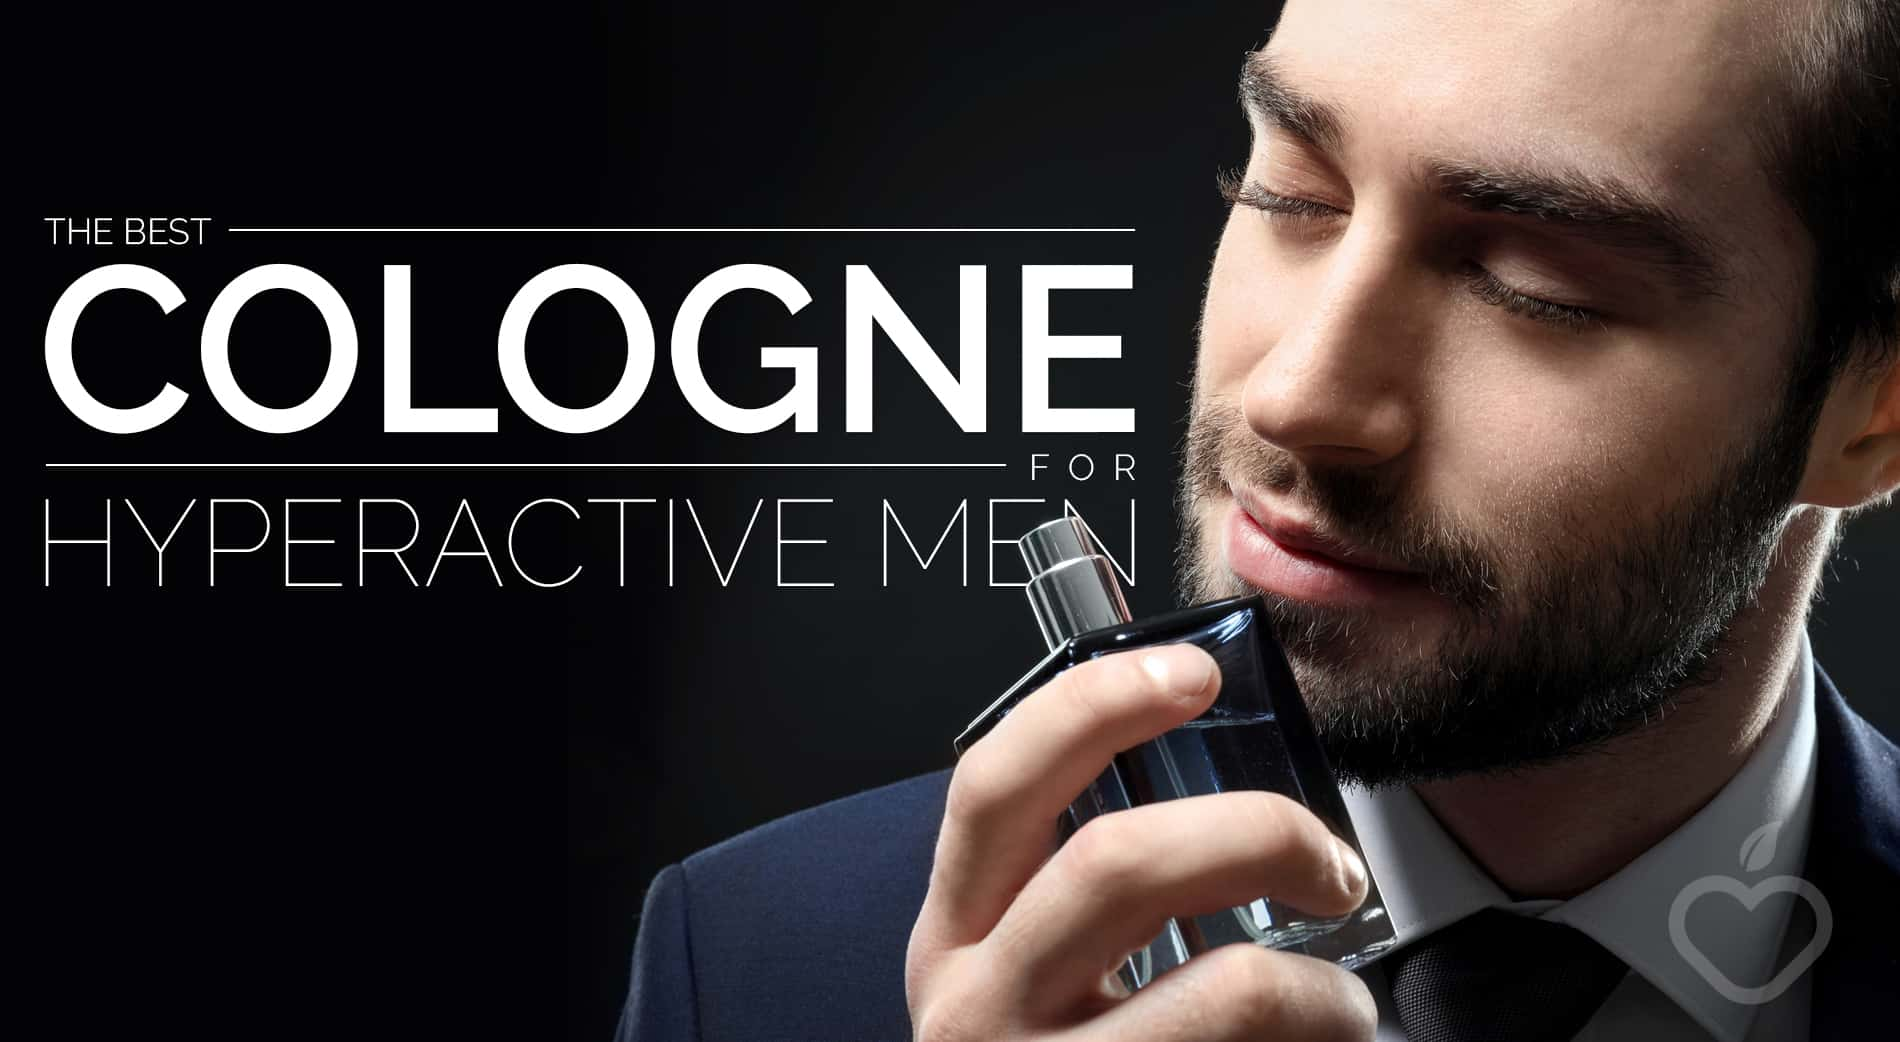 Cologne Image Design 1 - The Finest Cologne for Hyperactive Males